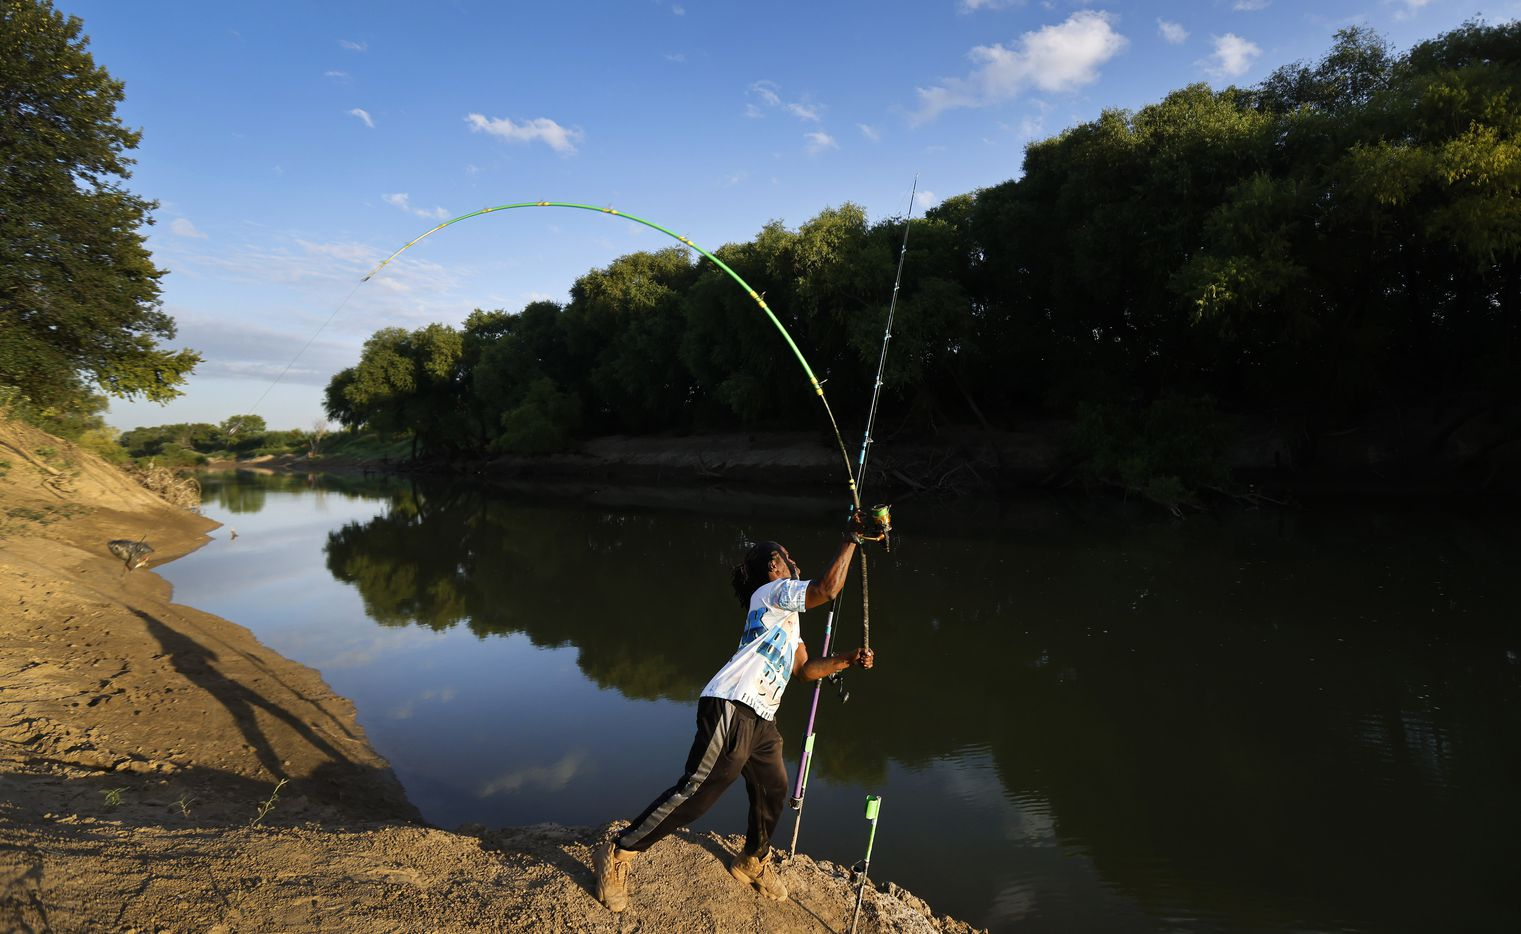 With the carp head as bait, Odell Allen casts his line for alligator gar on the Trinity River near the Westmoreland bridge, Monday, August 30, 2021.  Allen's viral videos of him catching 6-7 footers have made Dallas a popular spot for anglers all over the world who want to hook a gar. (Tom Fox/The Dallas Morning News)